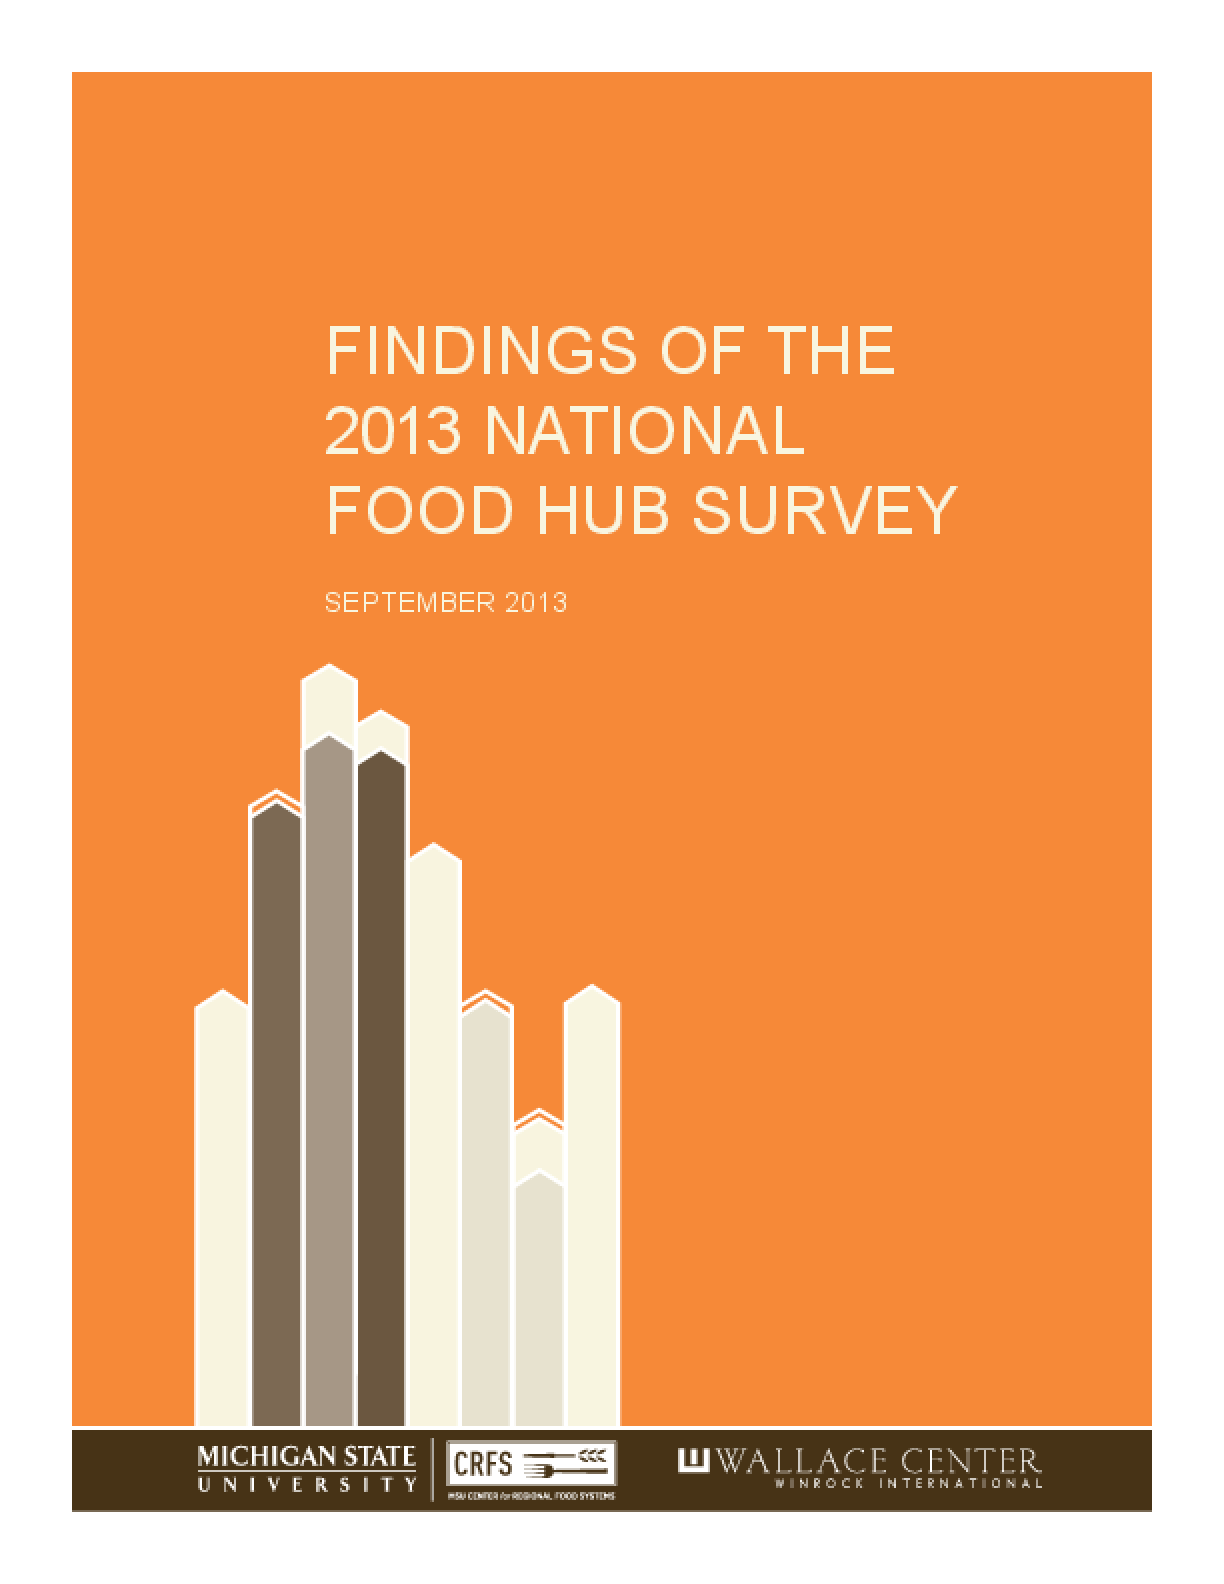 Findings of the 2013 National Food Hub Survey